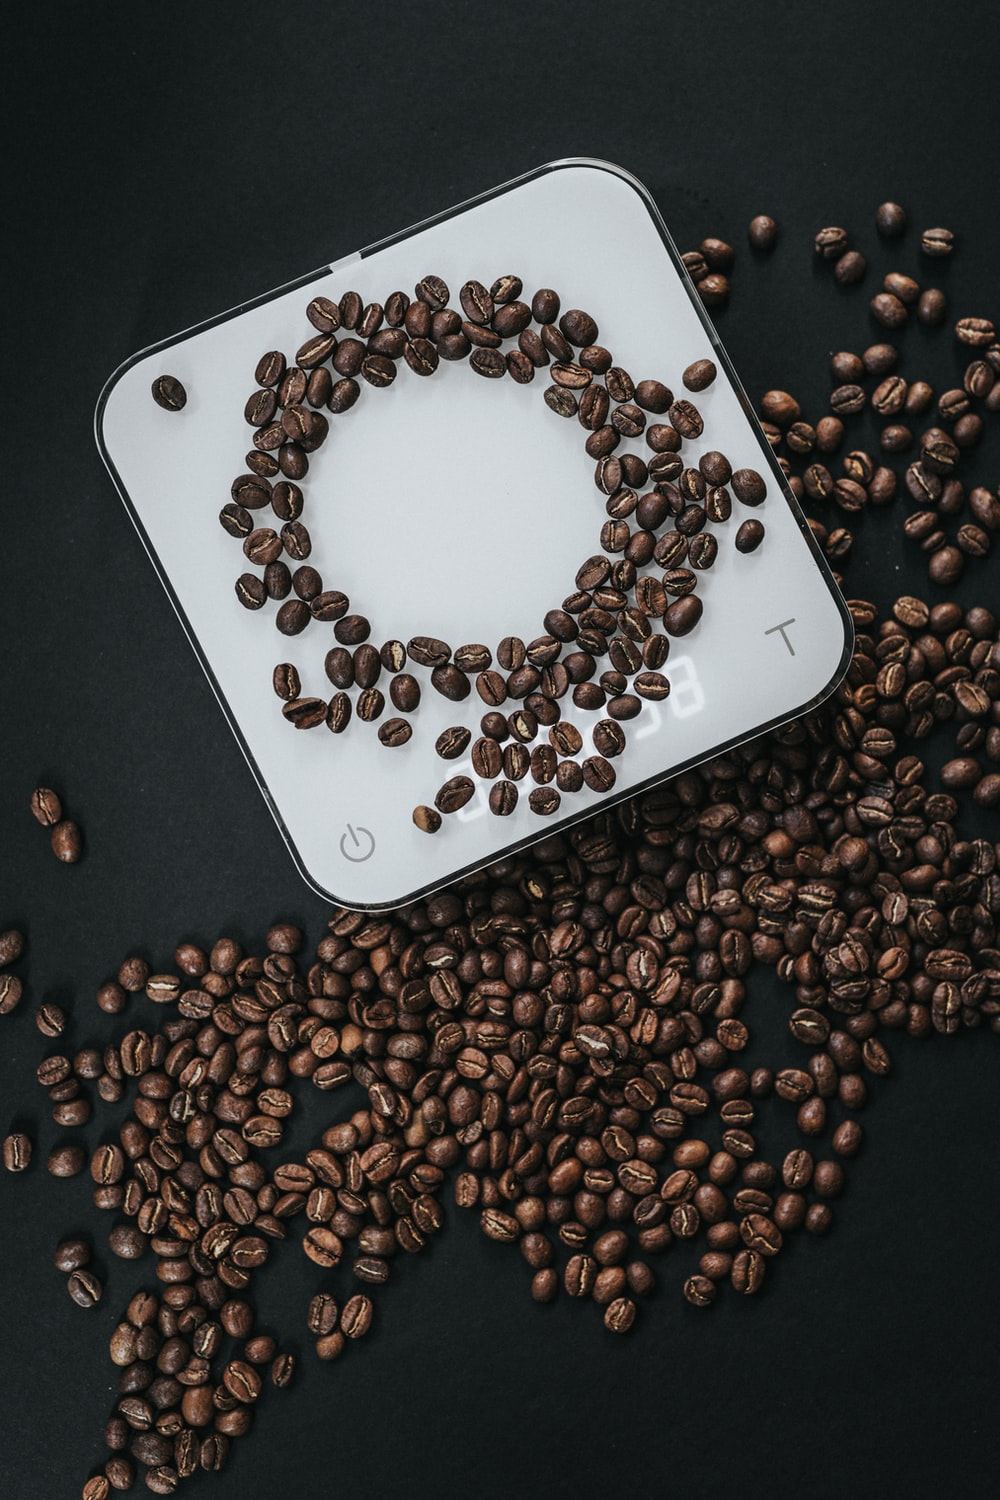 coffee beans on top of white cube scale in closeup photography